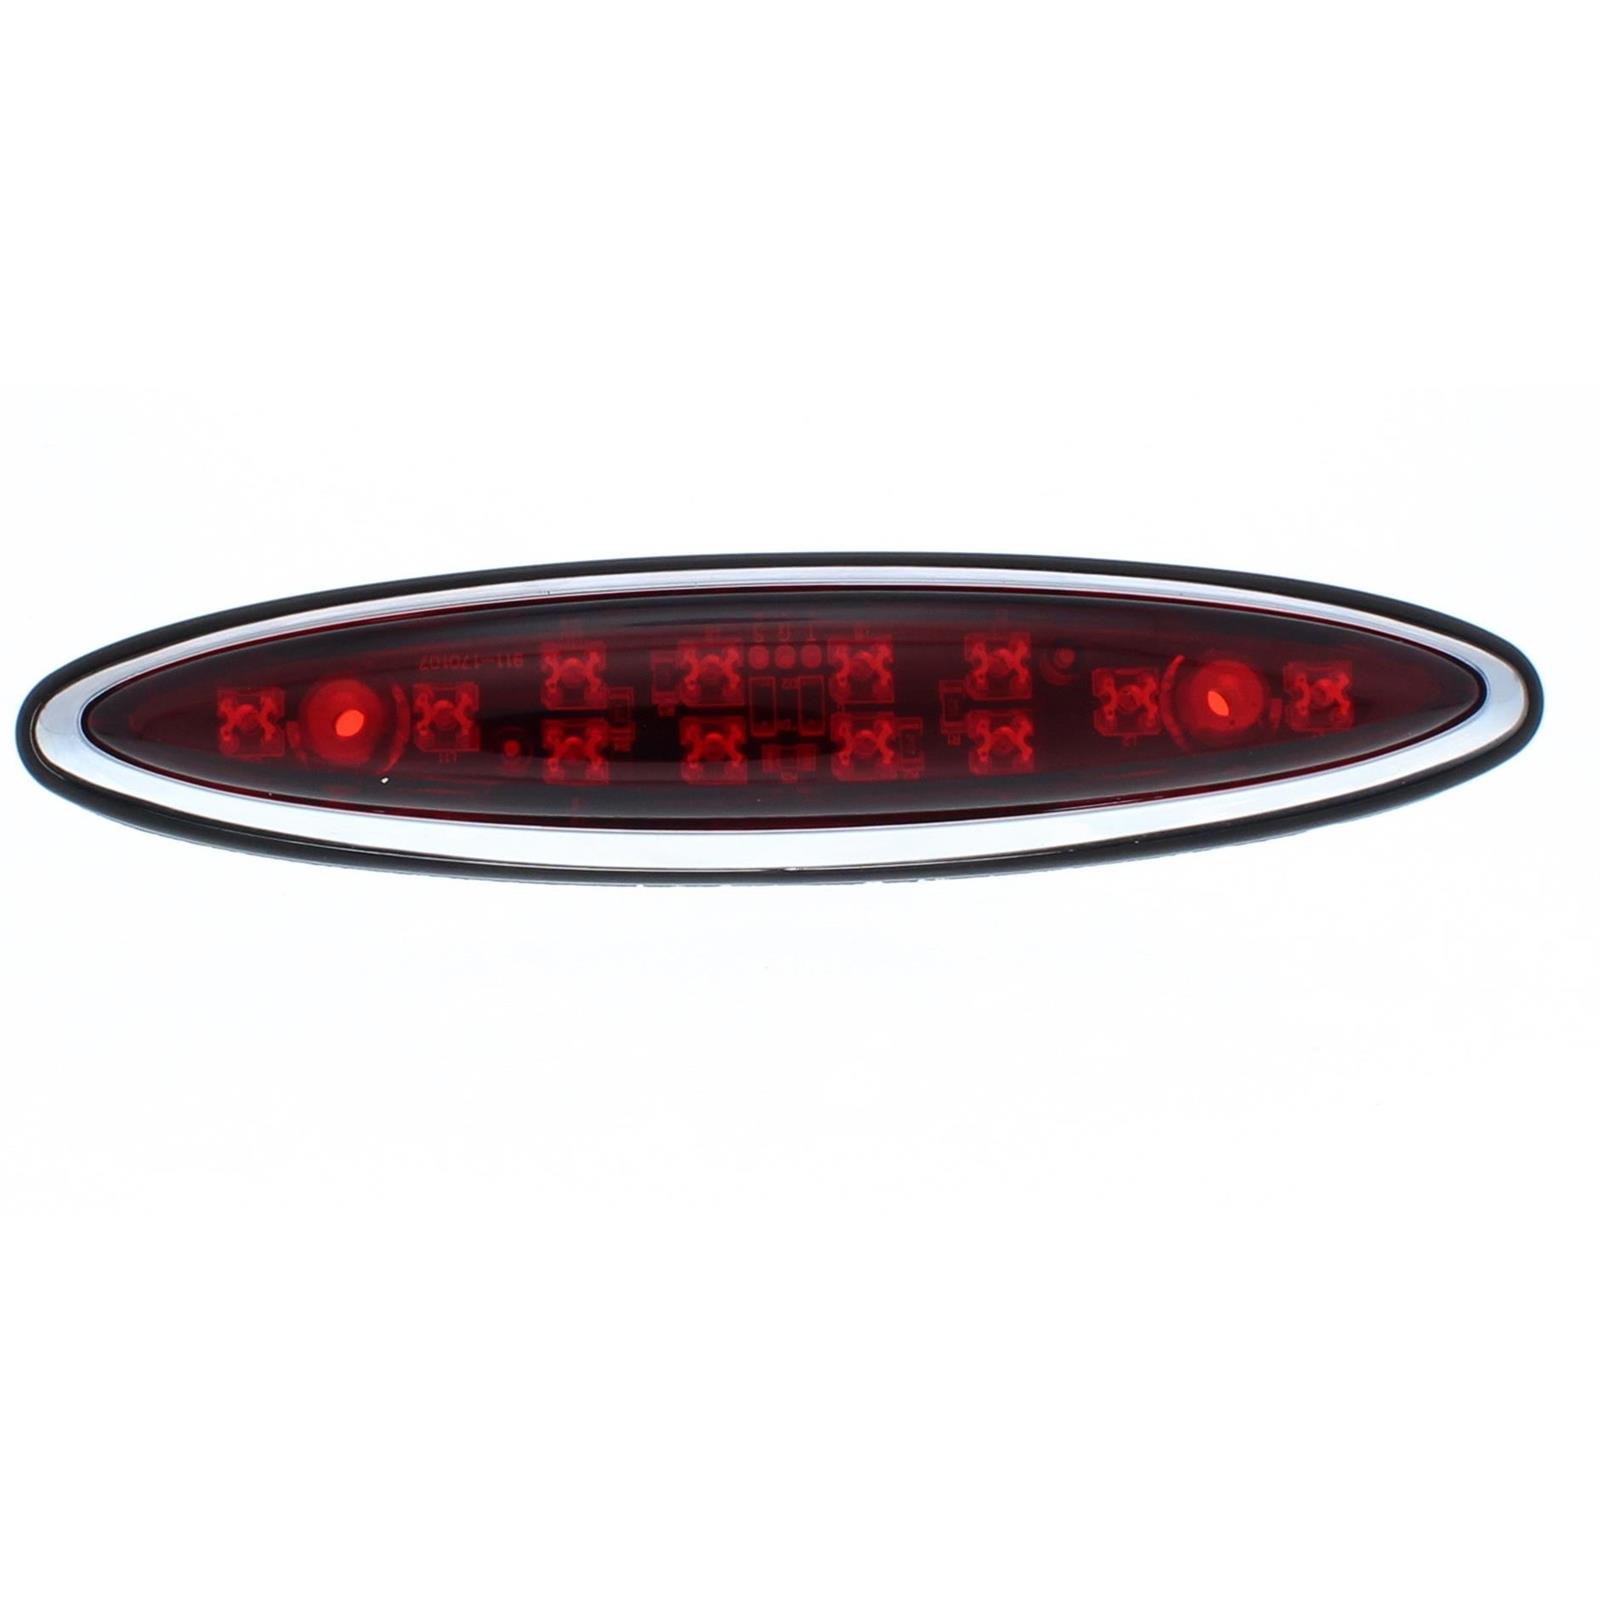 Speedway Led Cat Eye Tail Light Circuit To Convert The Two Wire One Side Marker